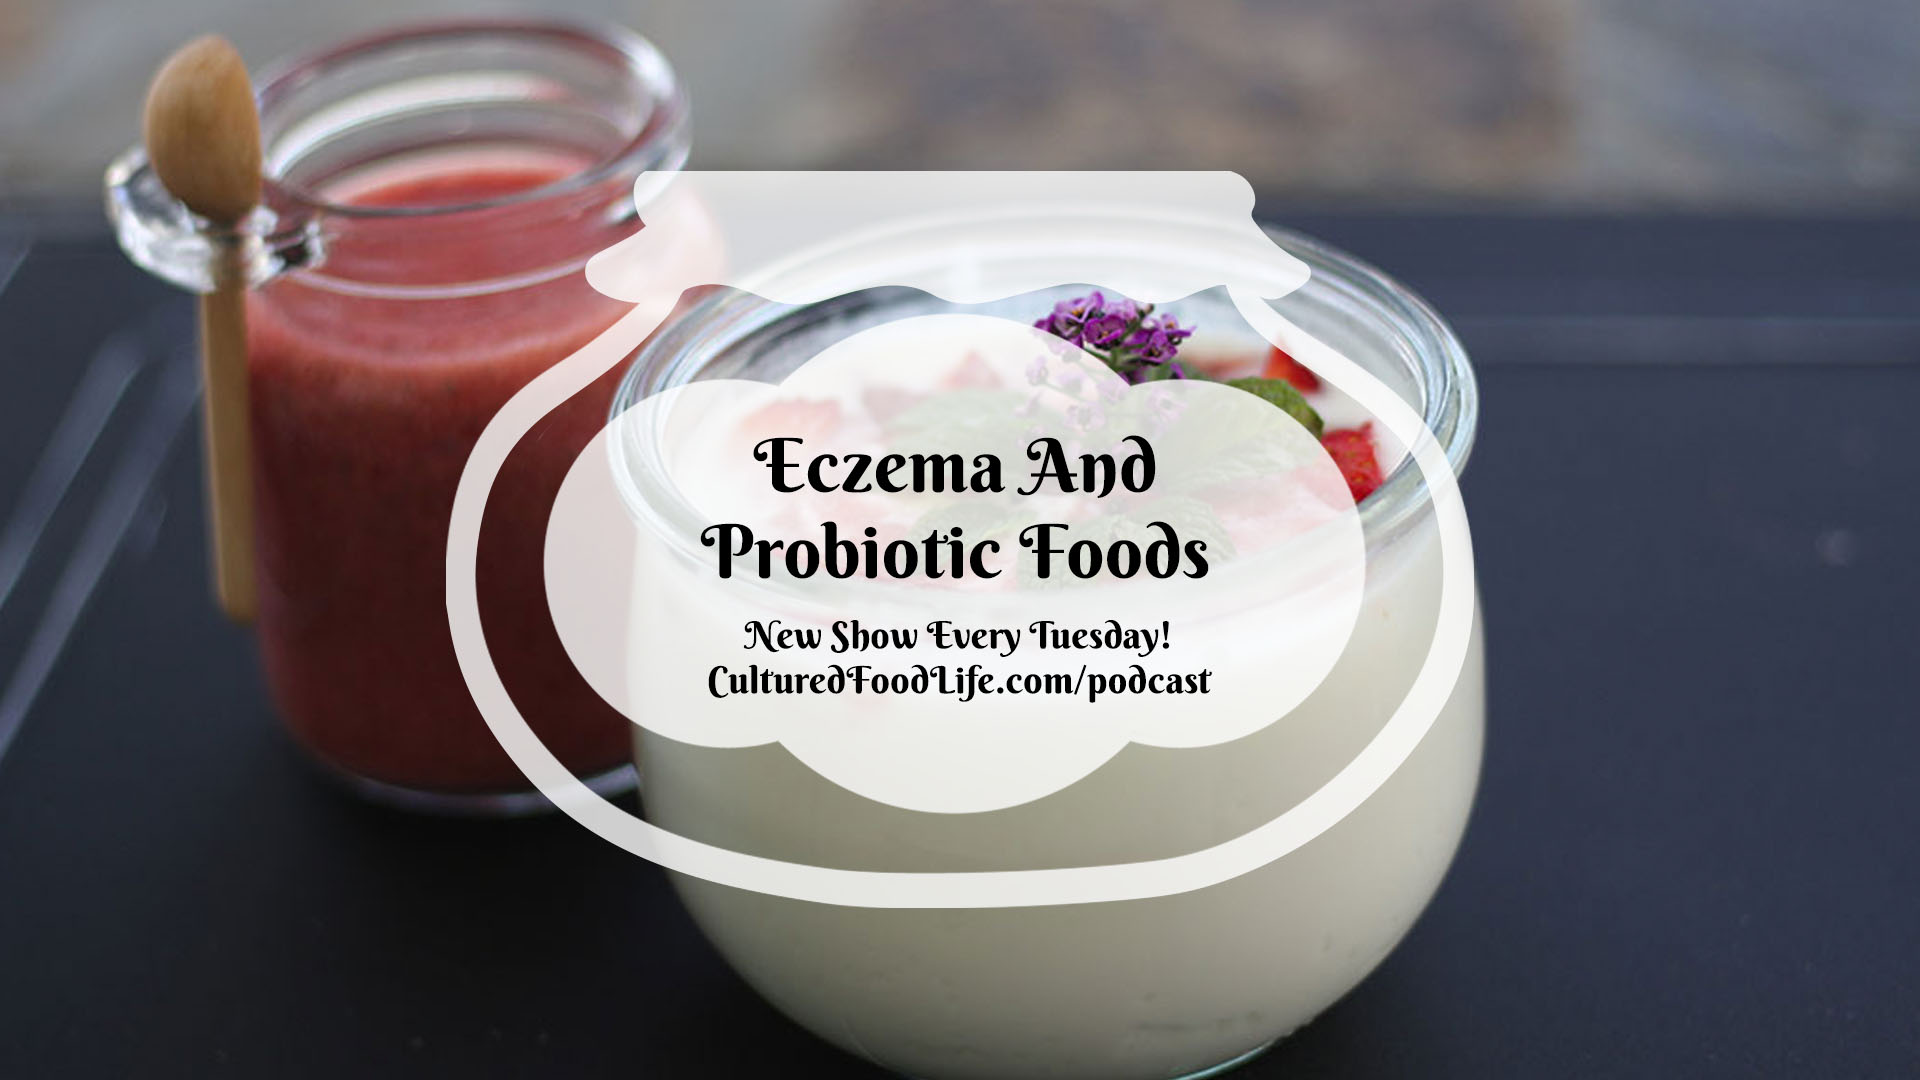 Eczema And Probiotic Foods